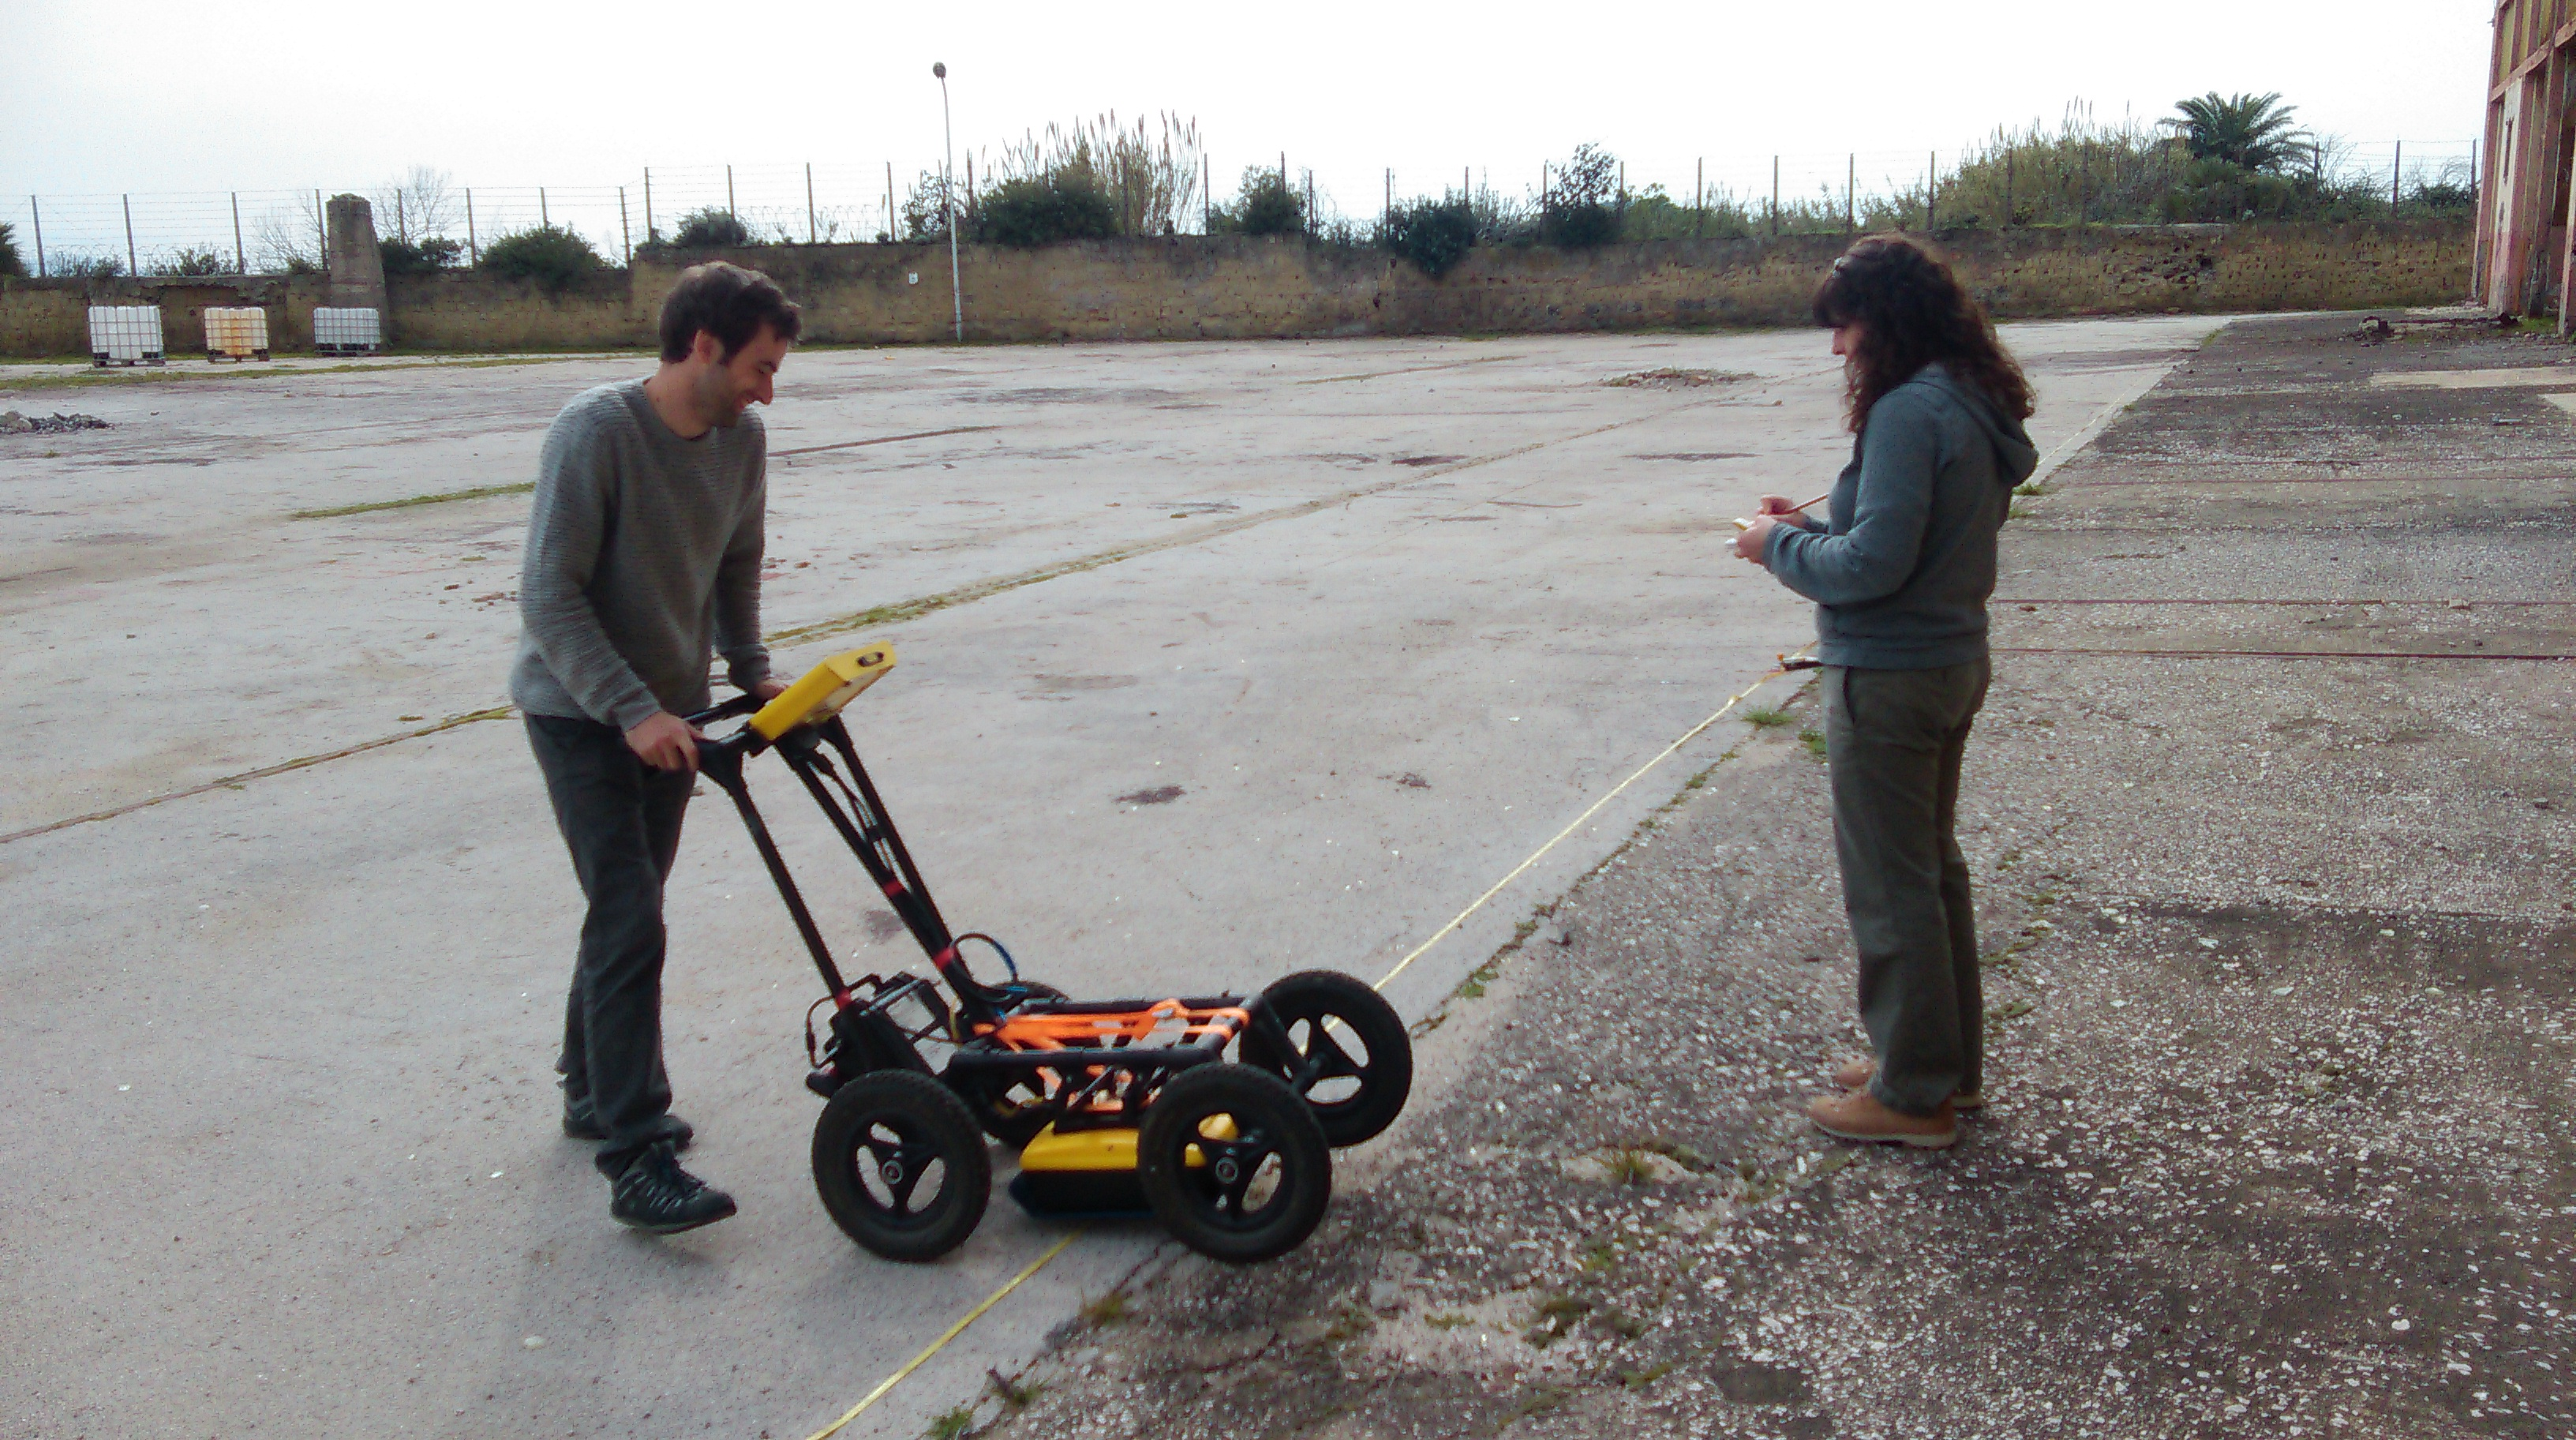 GPR and note-taking on site